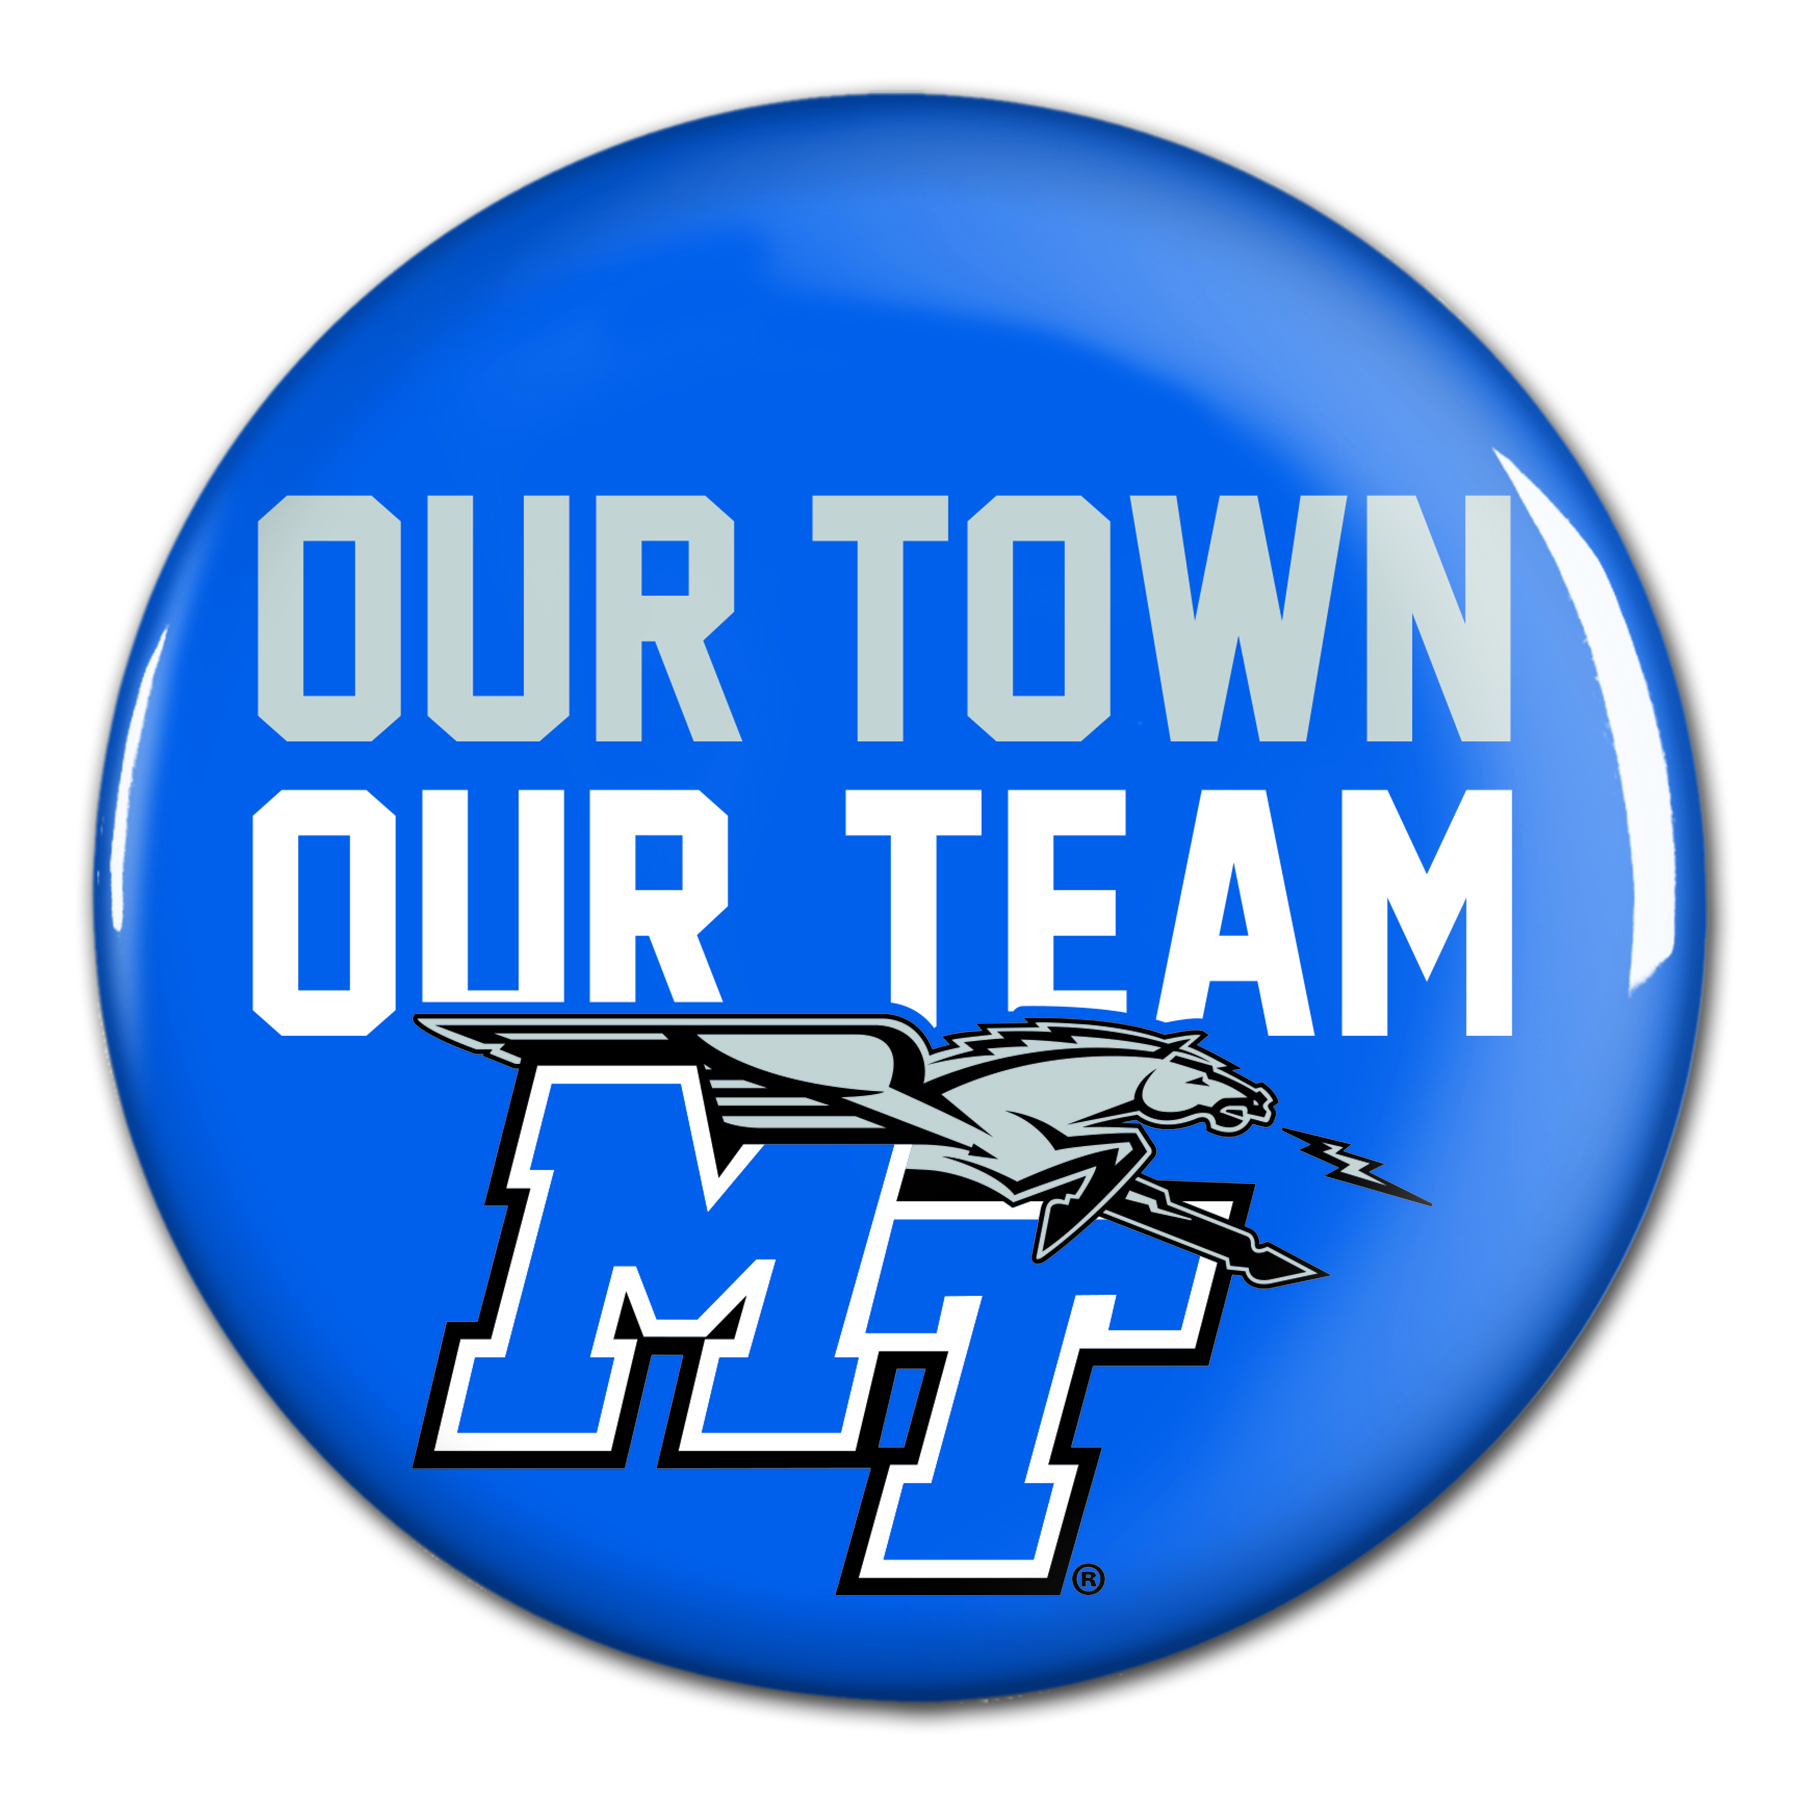 "Our Town Our Team 3"" Button"